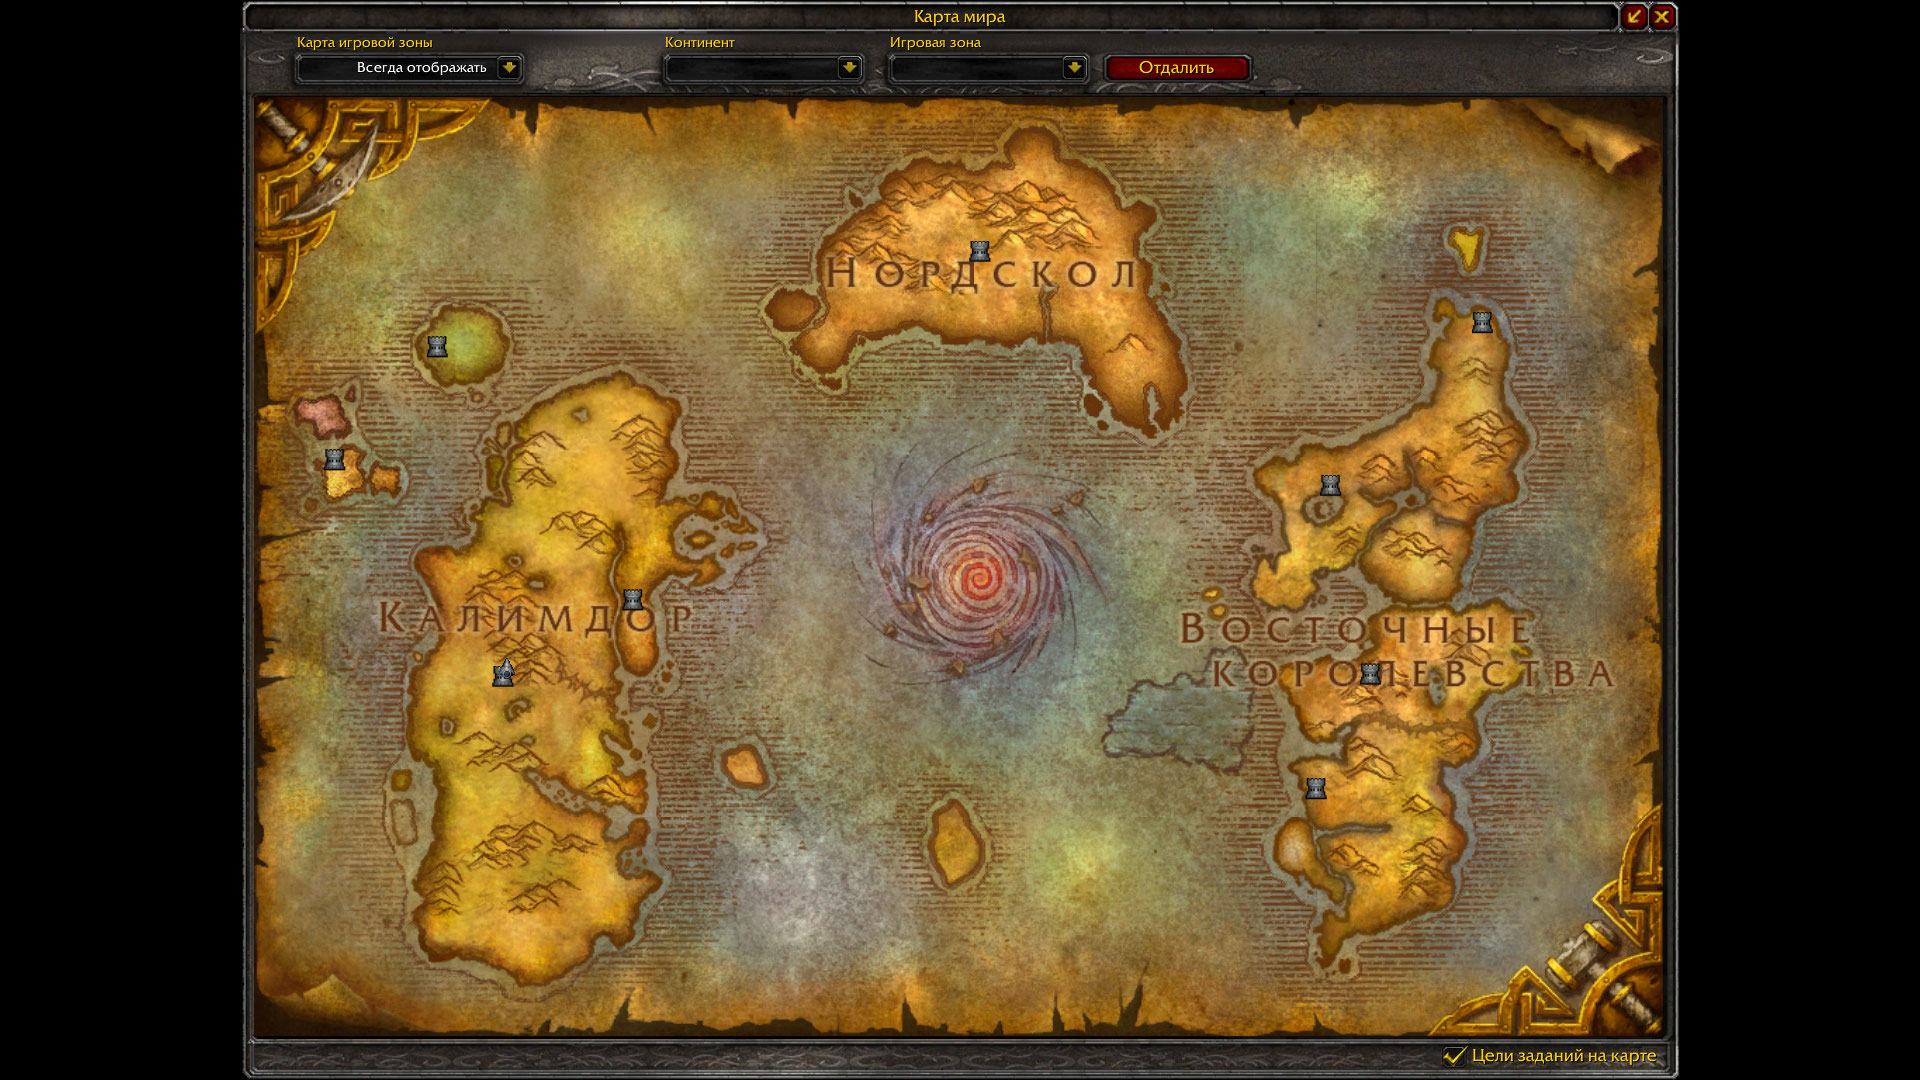 Download sex map for warcraft porno images